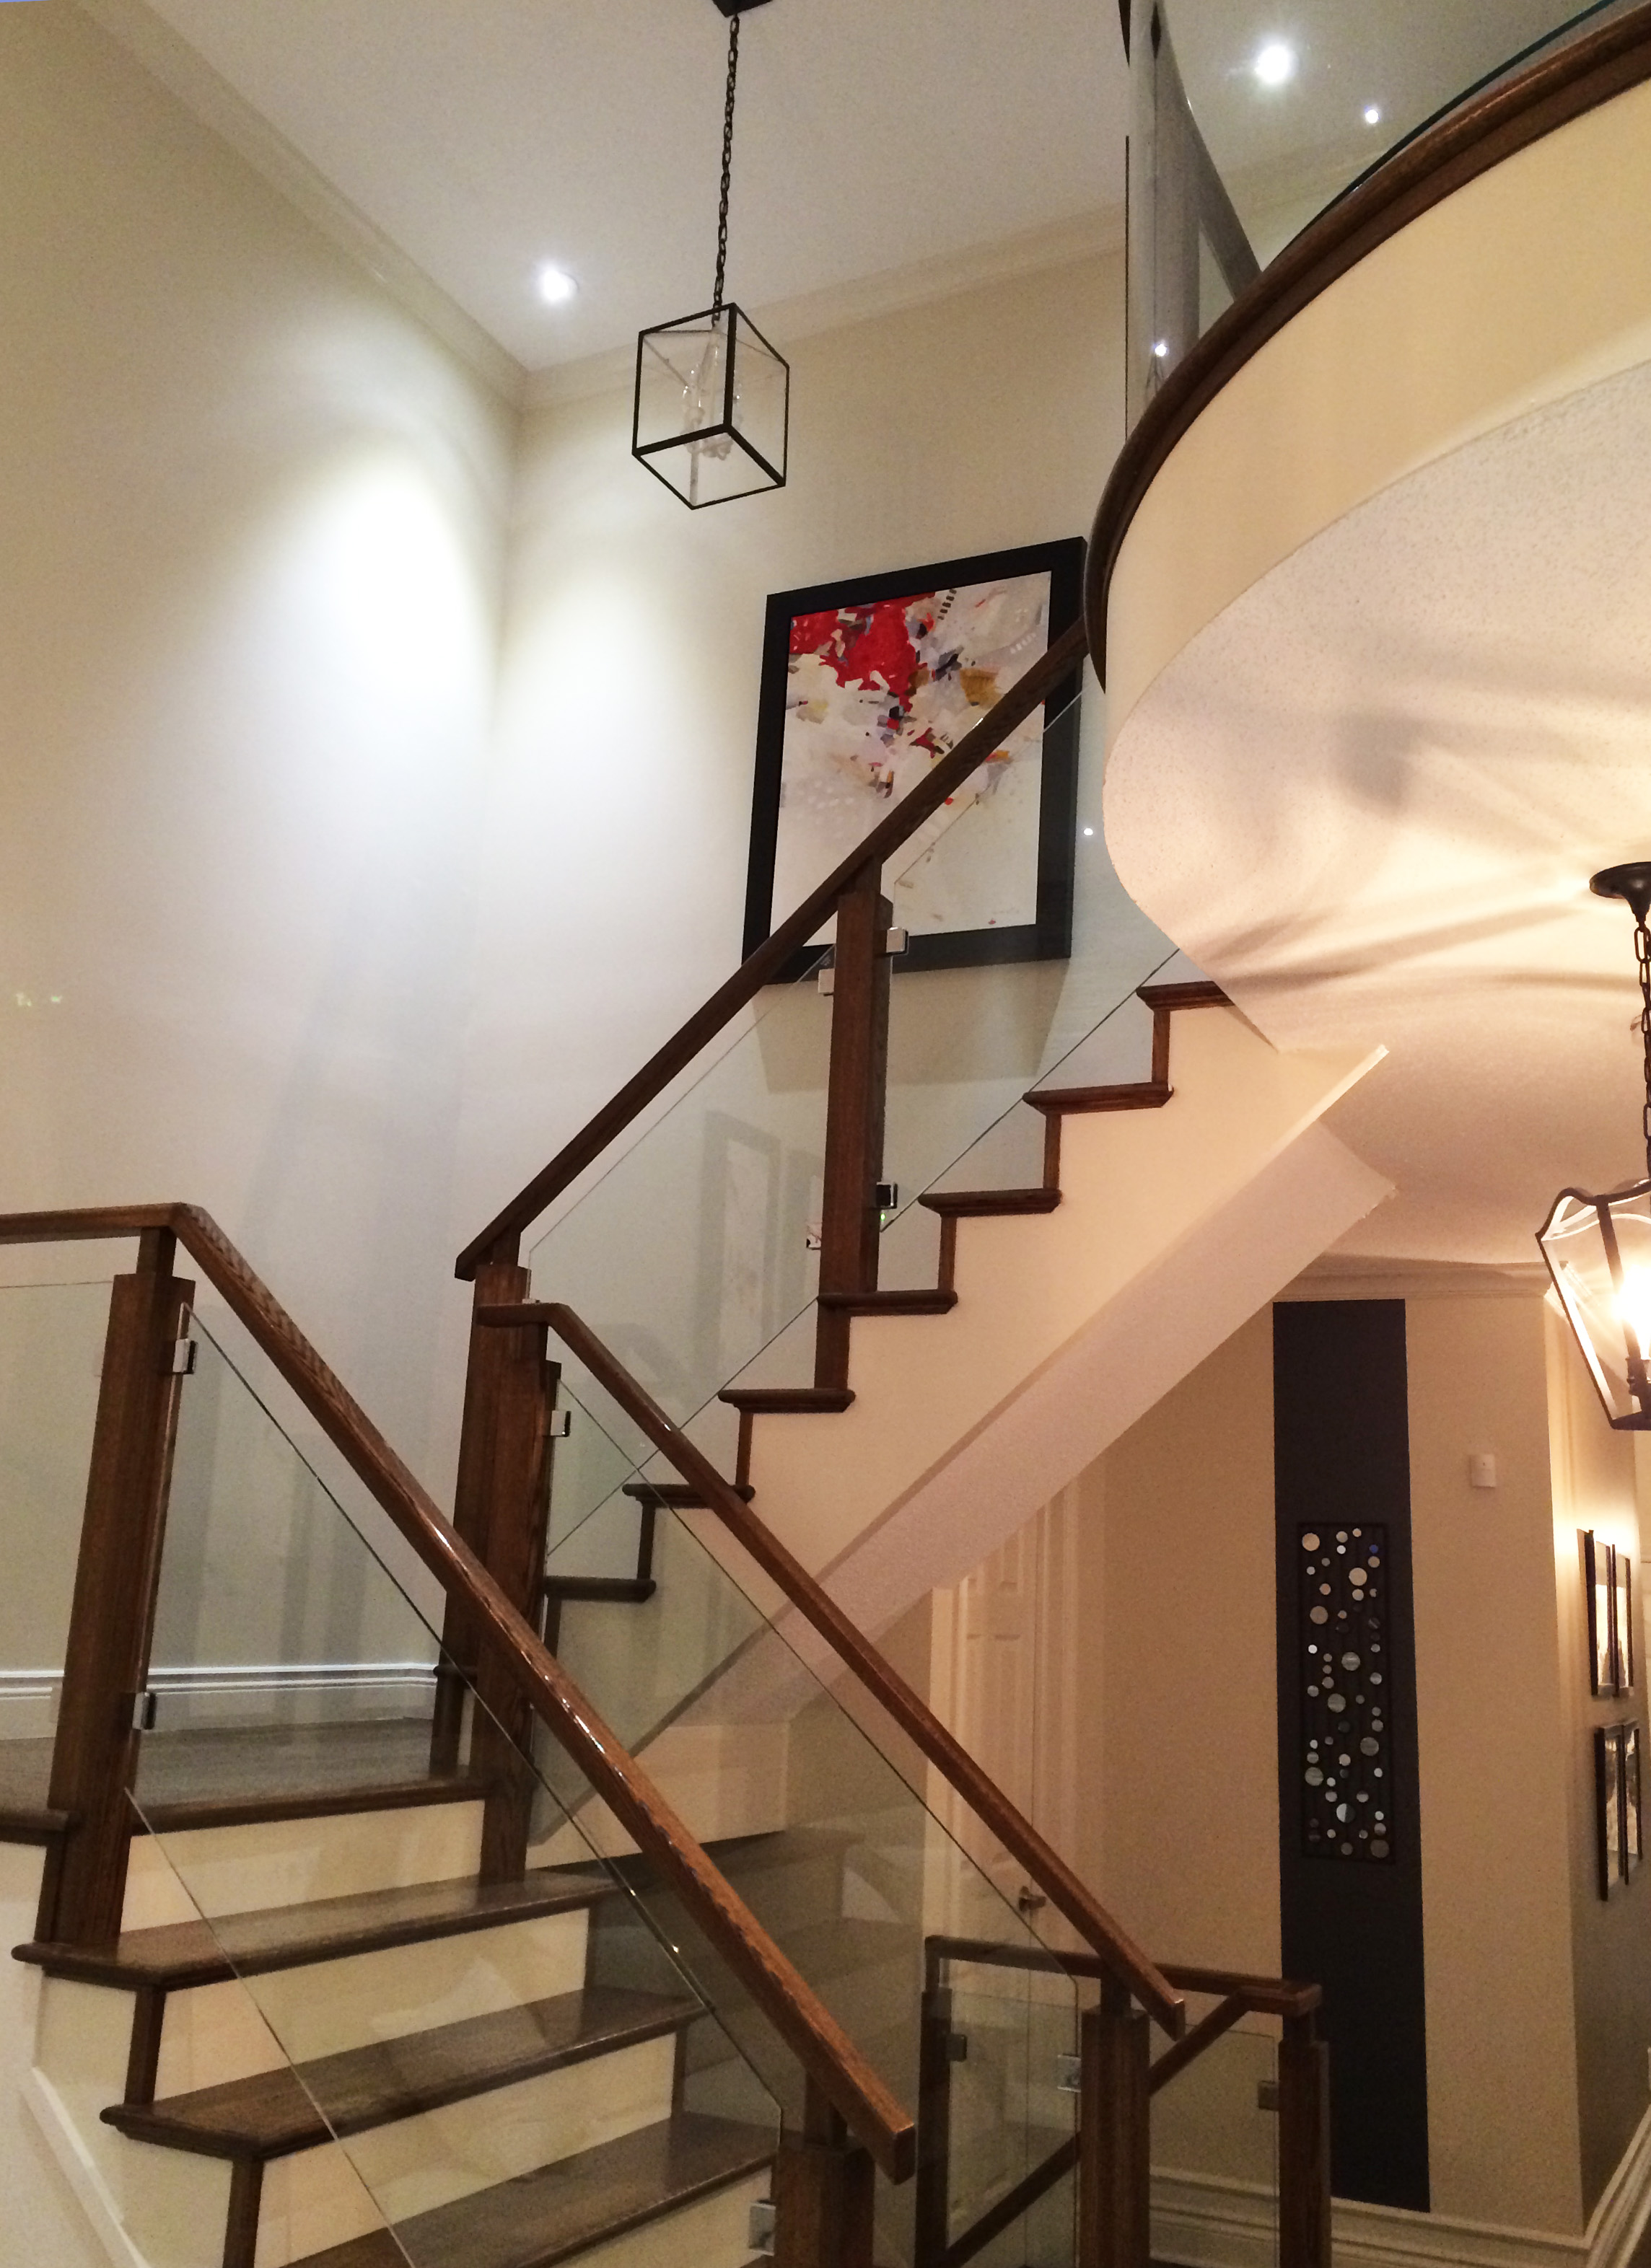 Residential Home Design - Staircase